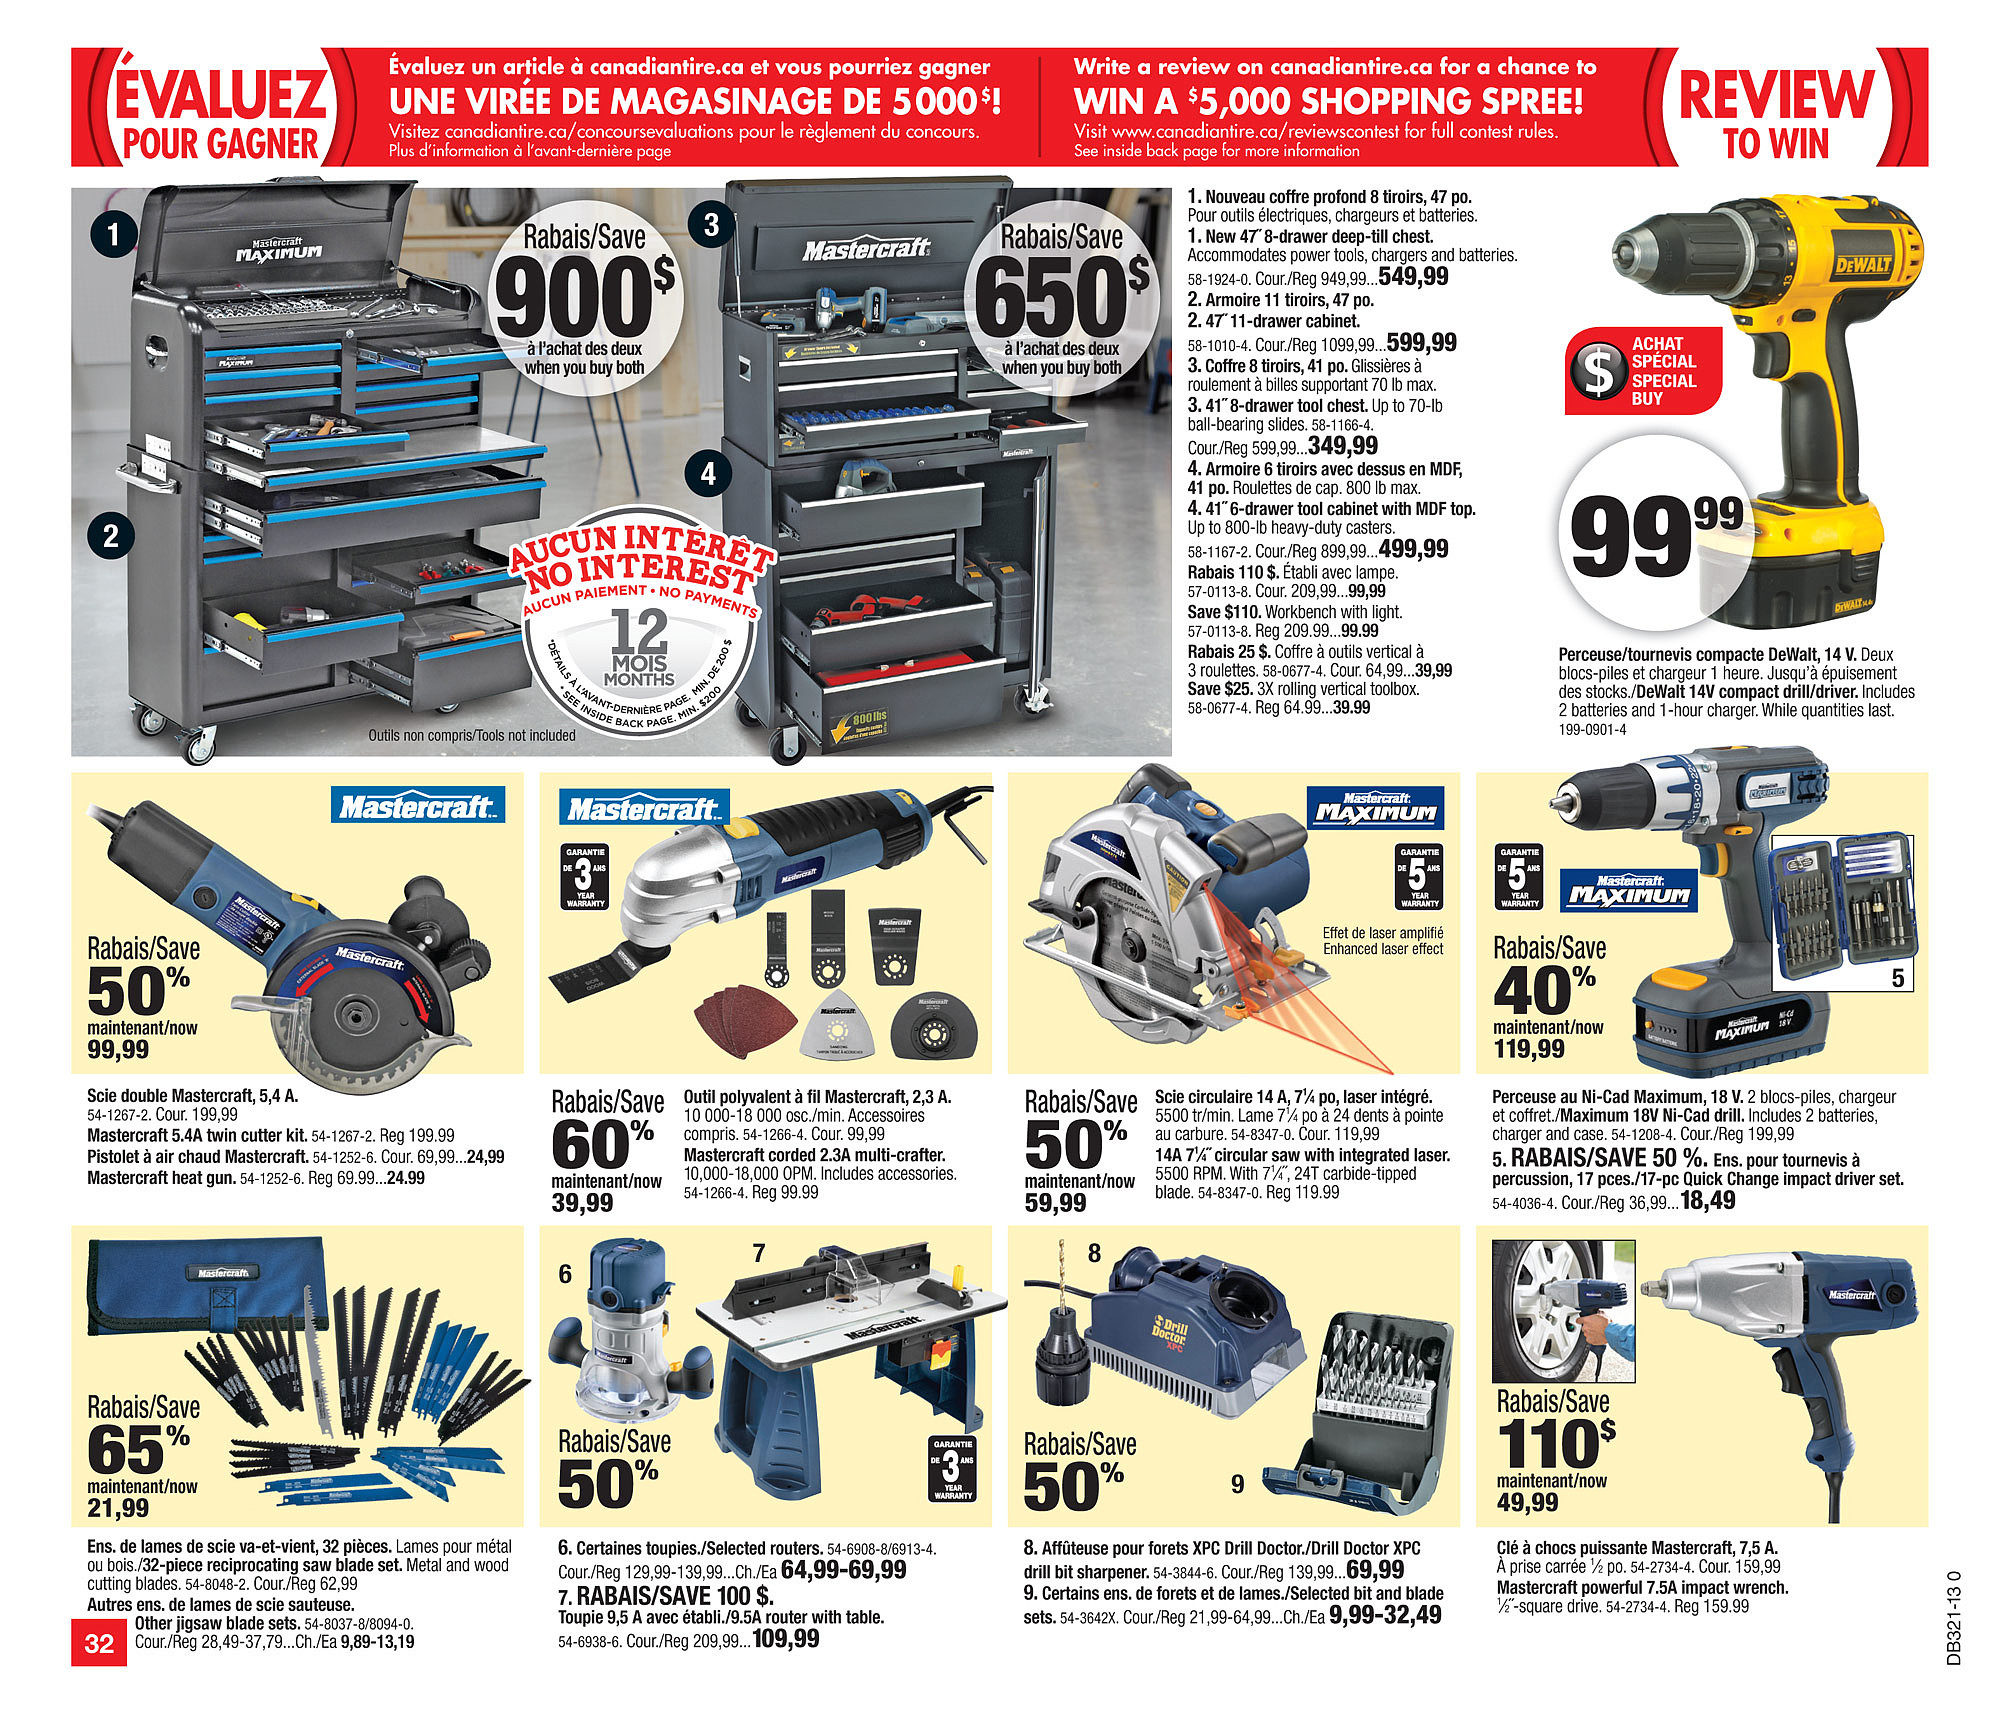 Canadian tire weekly flyer weekly flyer may 16 23 canadian tire weekly flyer weekly flyer may 16 23 redflagdeals greentooth Gallery